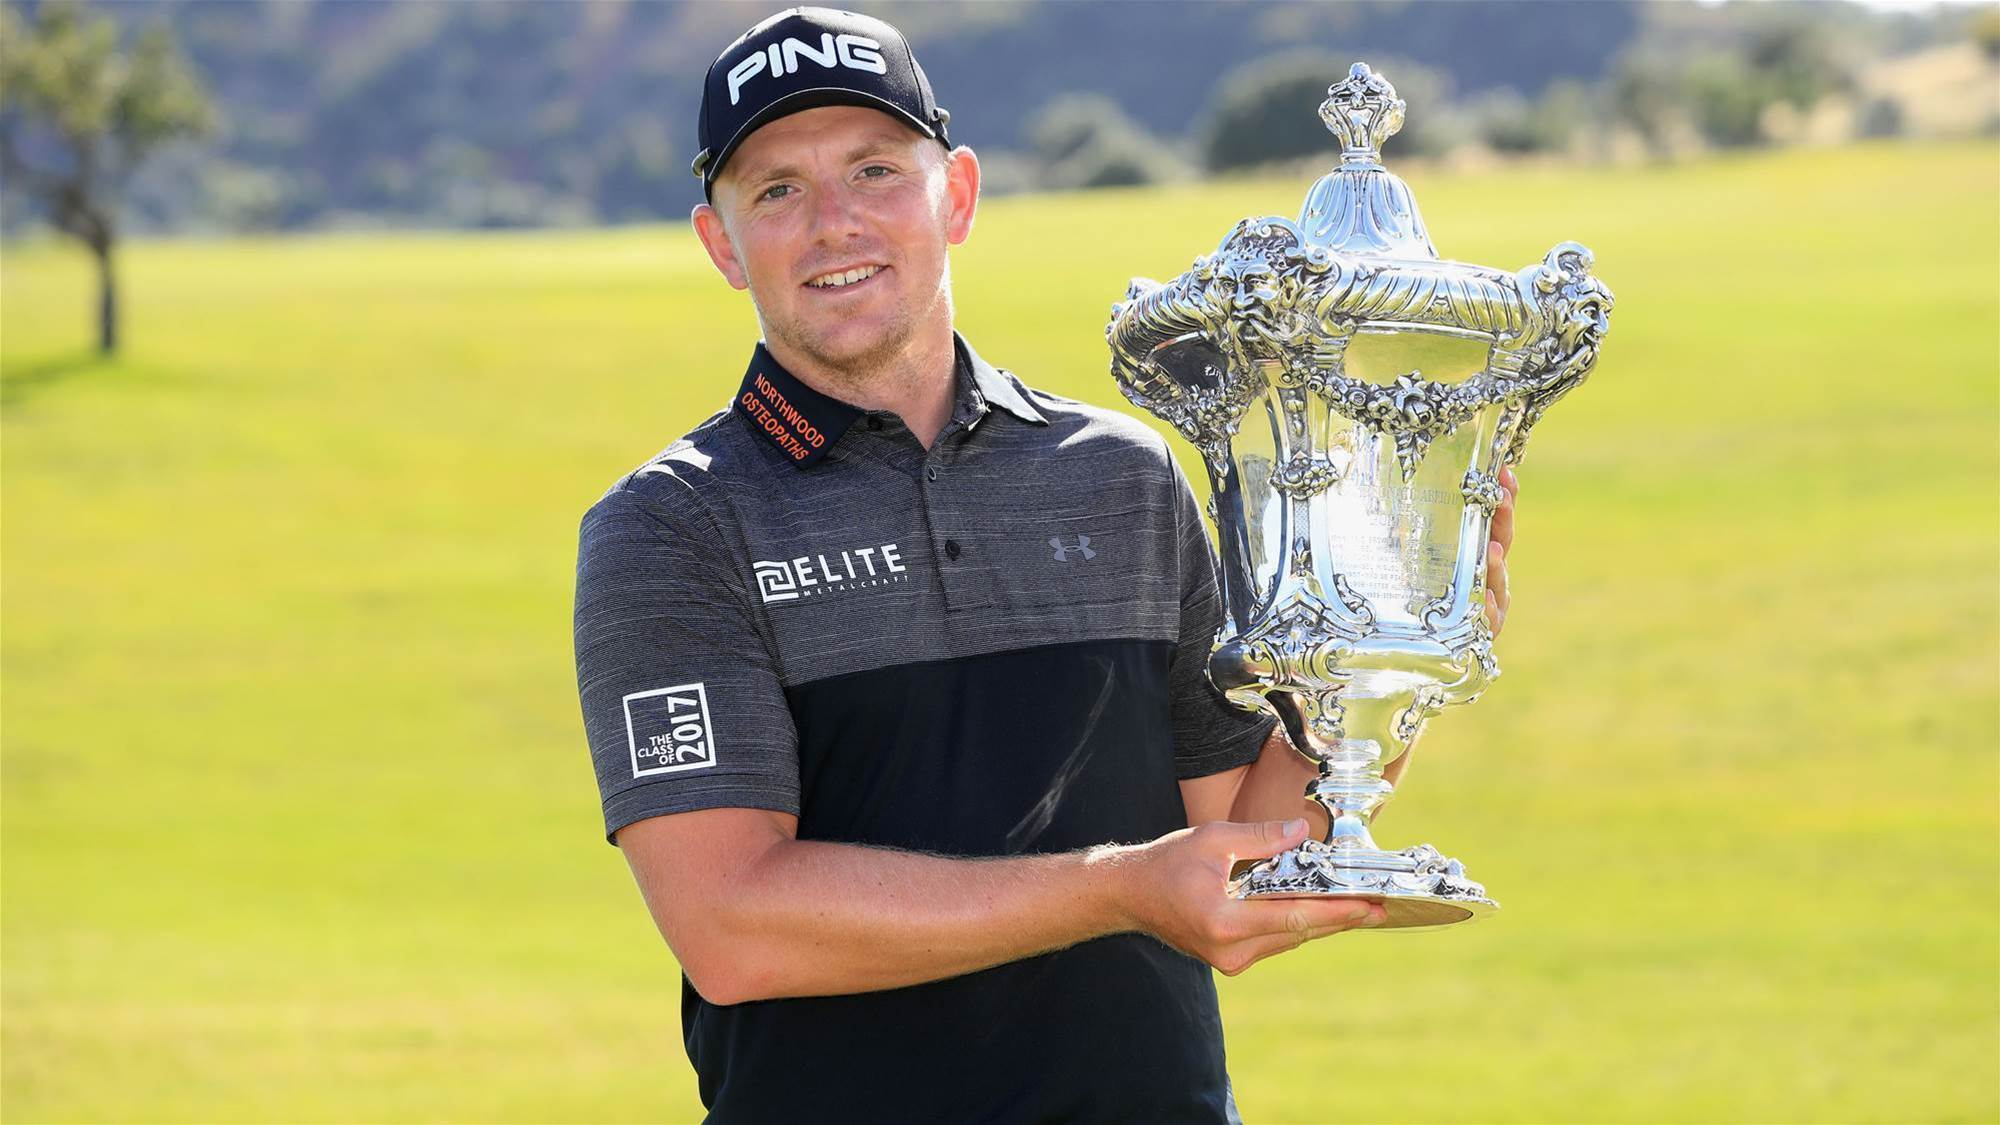 EURO TOUR: Wallace wows with wire-to-wire win